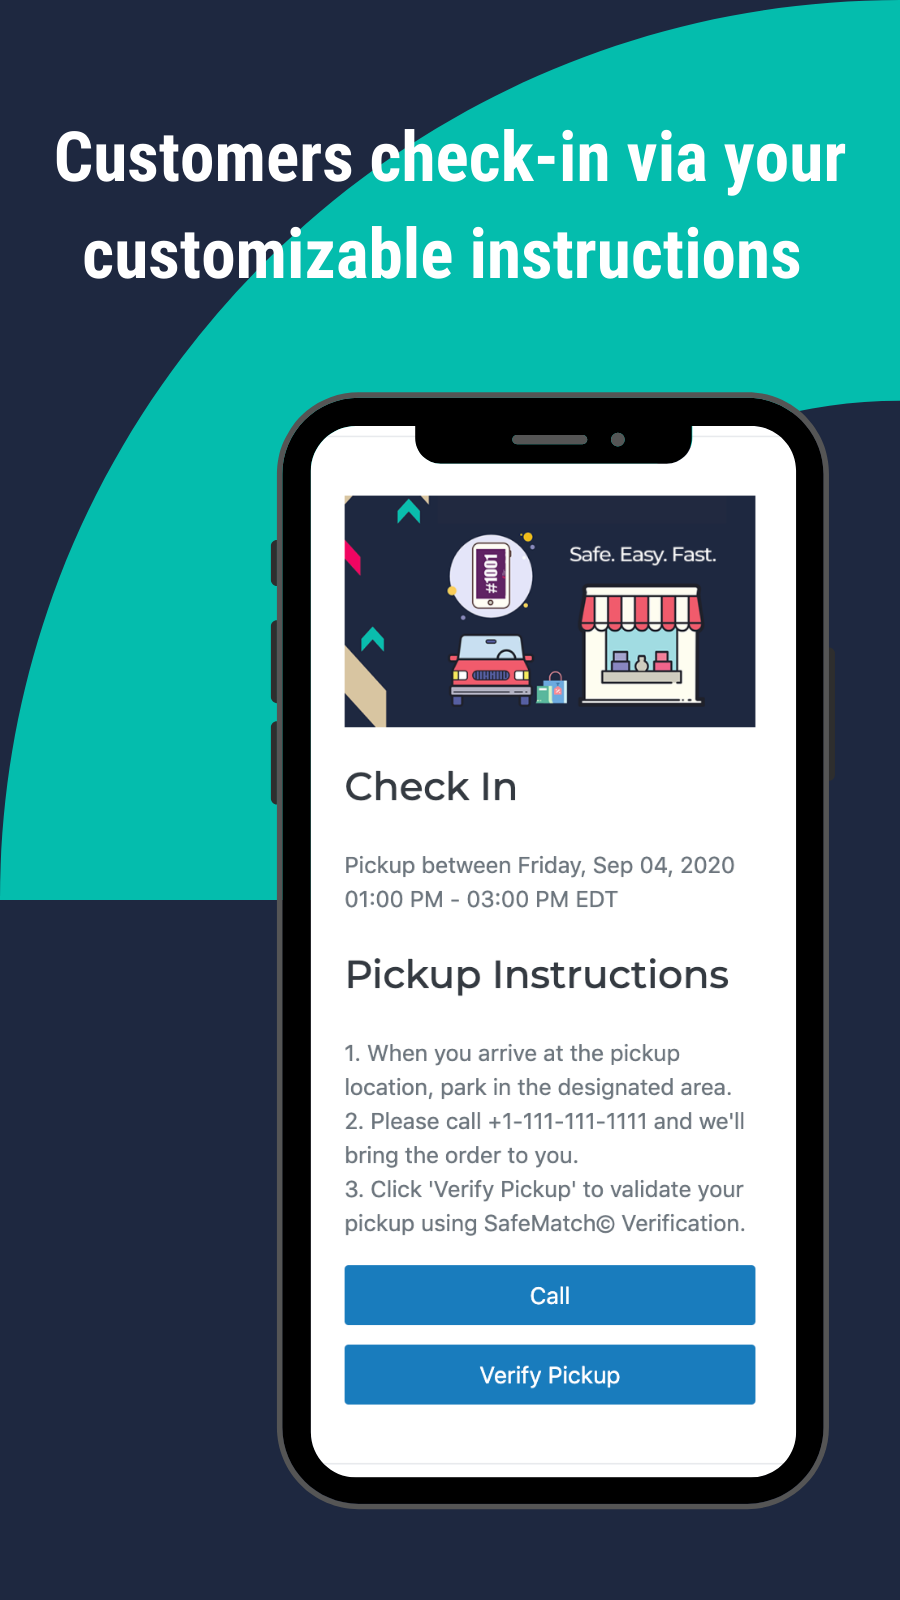 Customers check-in via your customizable instructions